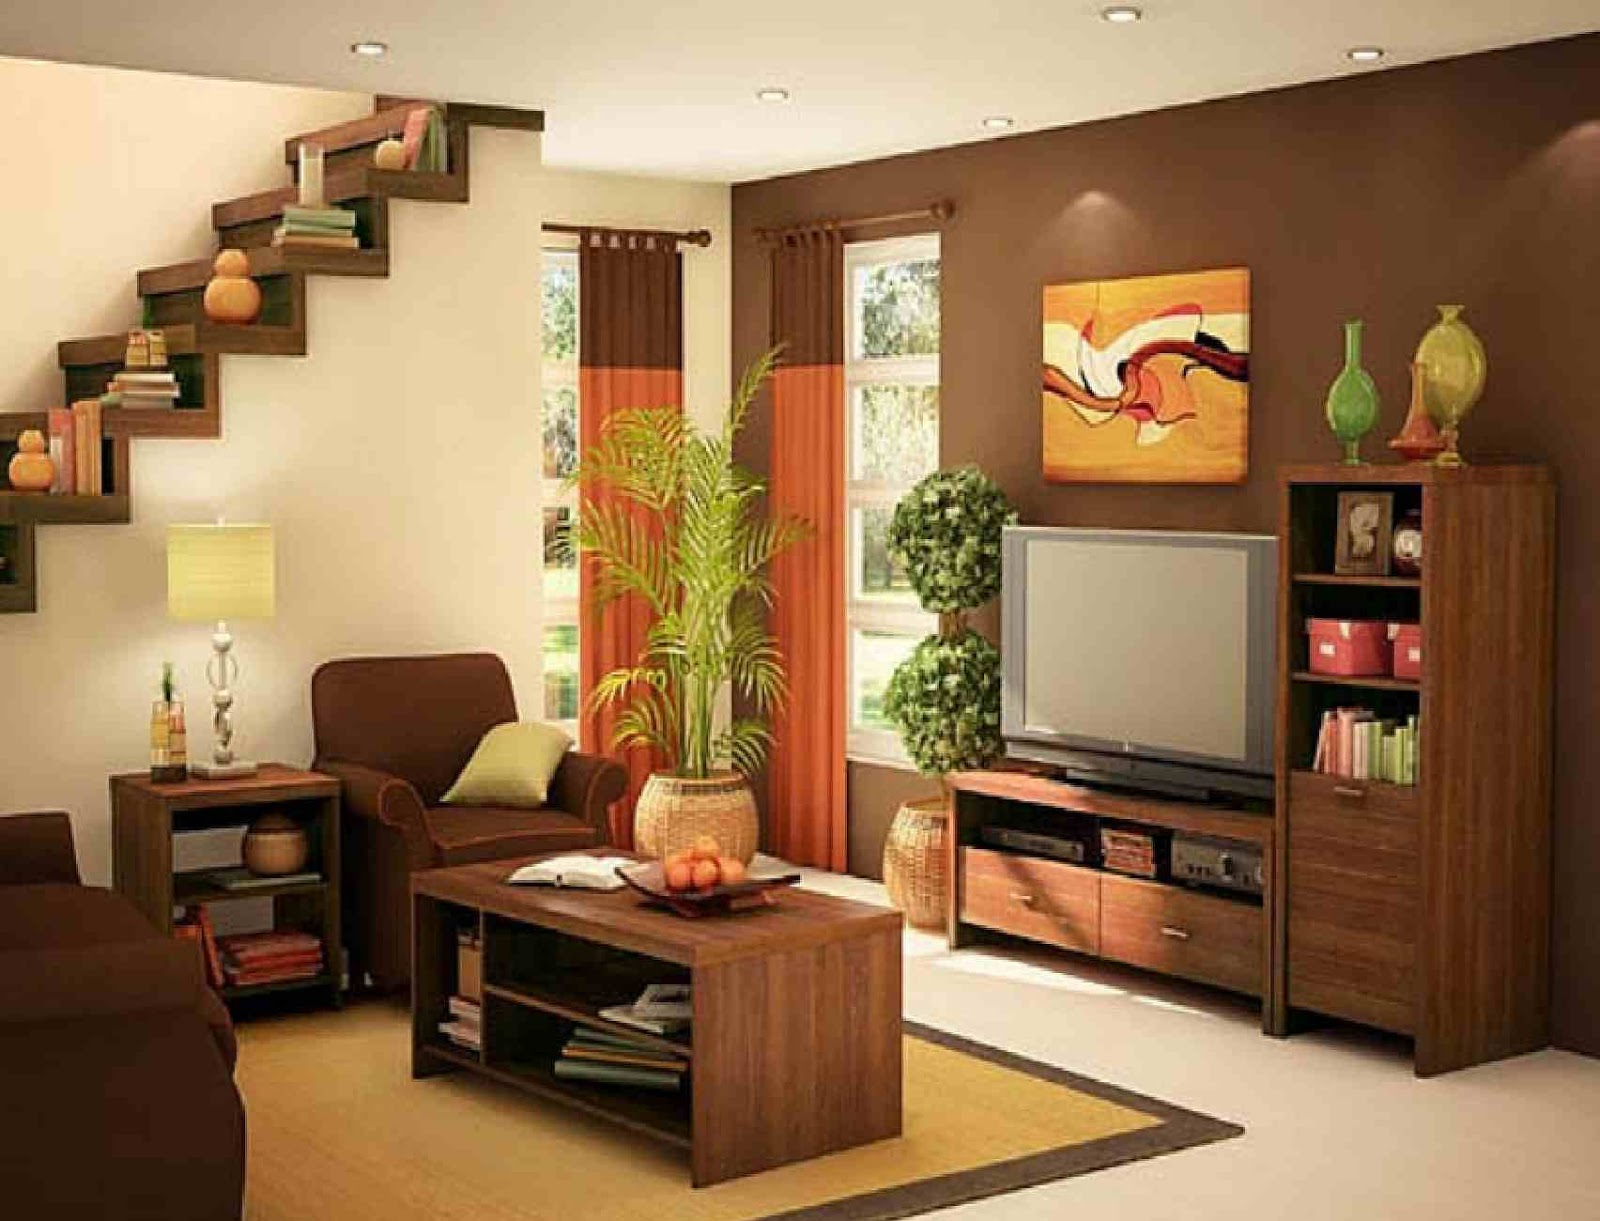 Living Room Interior Design For Small Houses